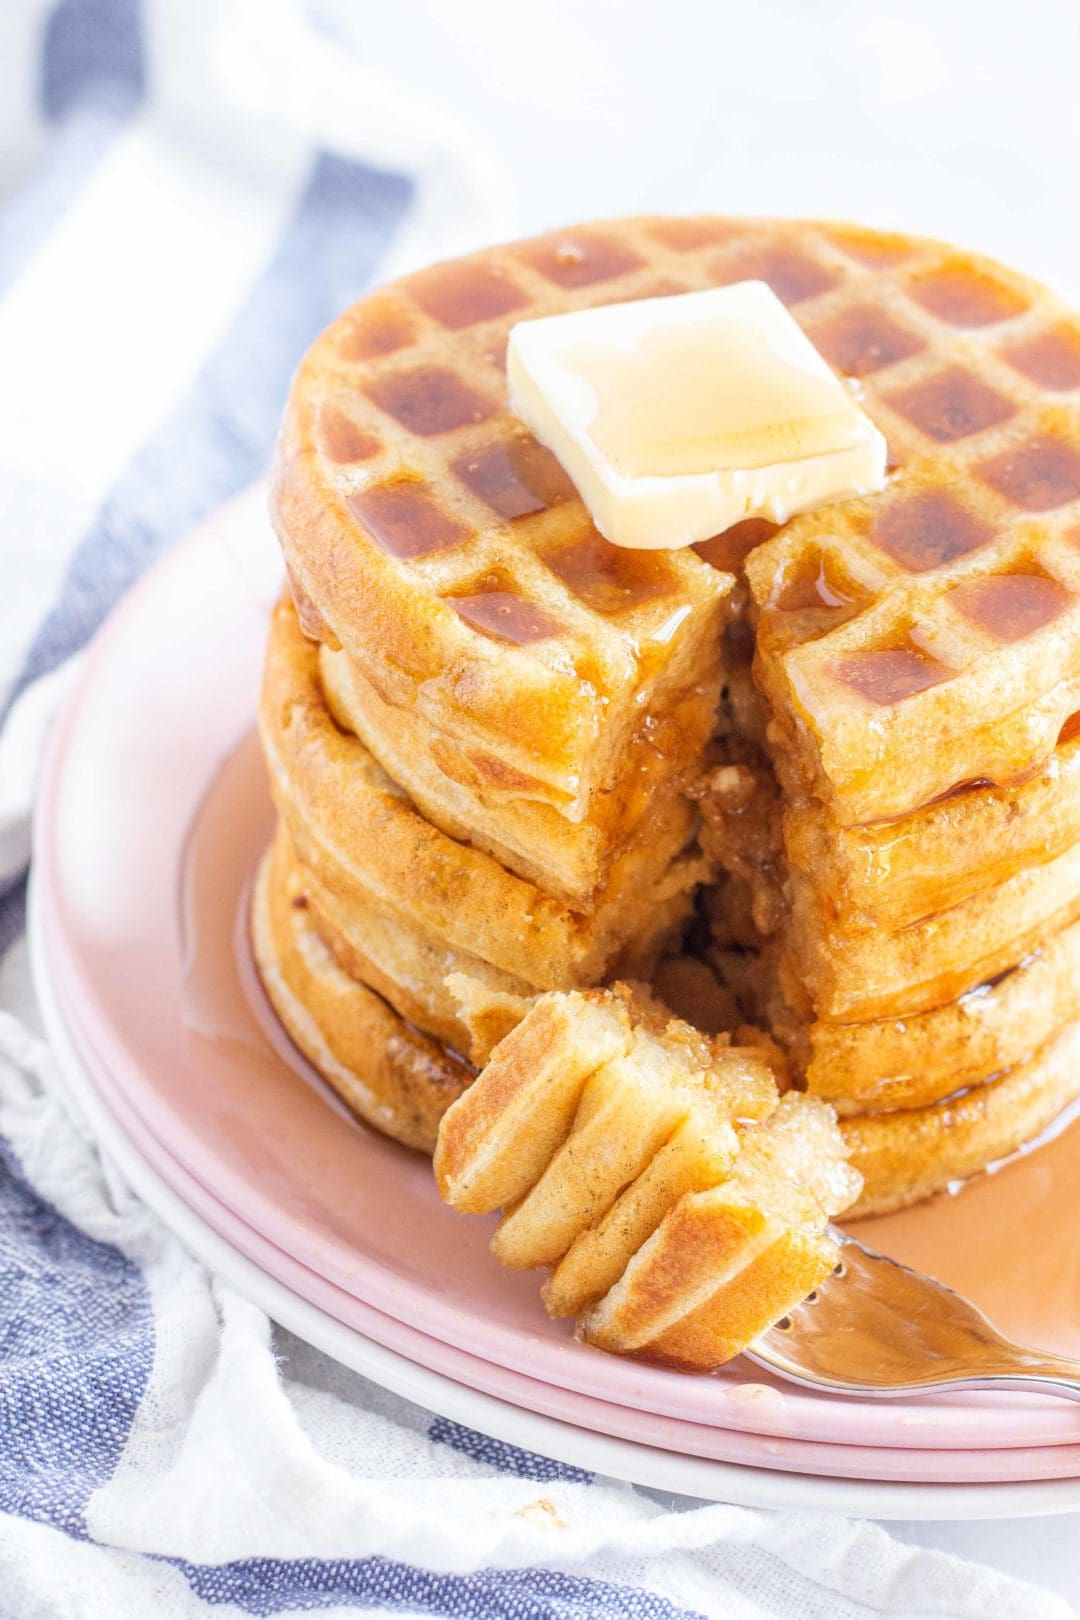 stack of gluten free waffles on a pink plate. Topped with a pat of butter and drizzled with maple syrup. A bite on a fork is sitting on the plate.